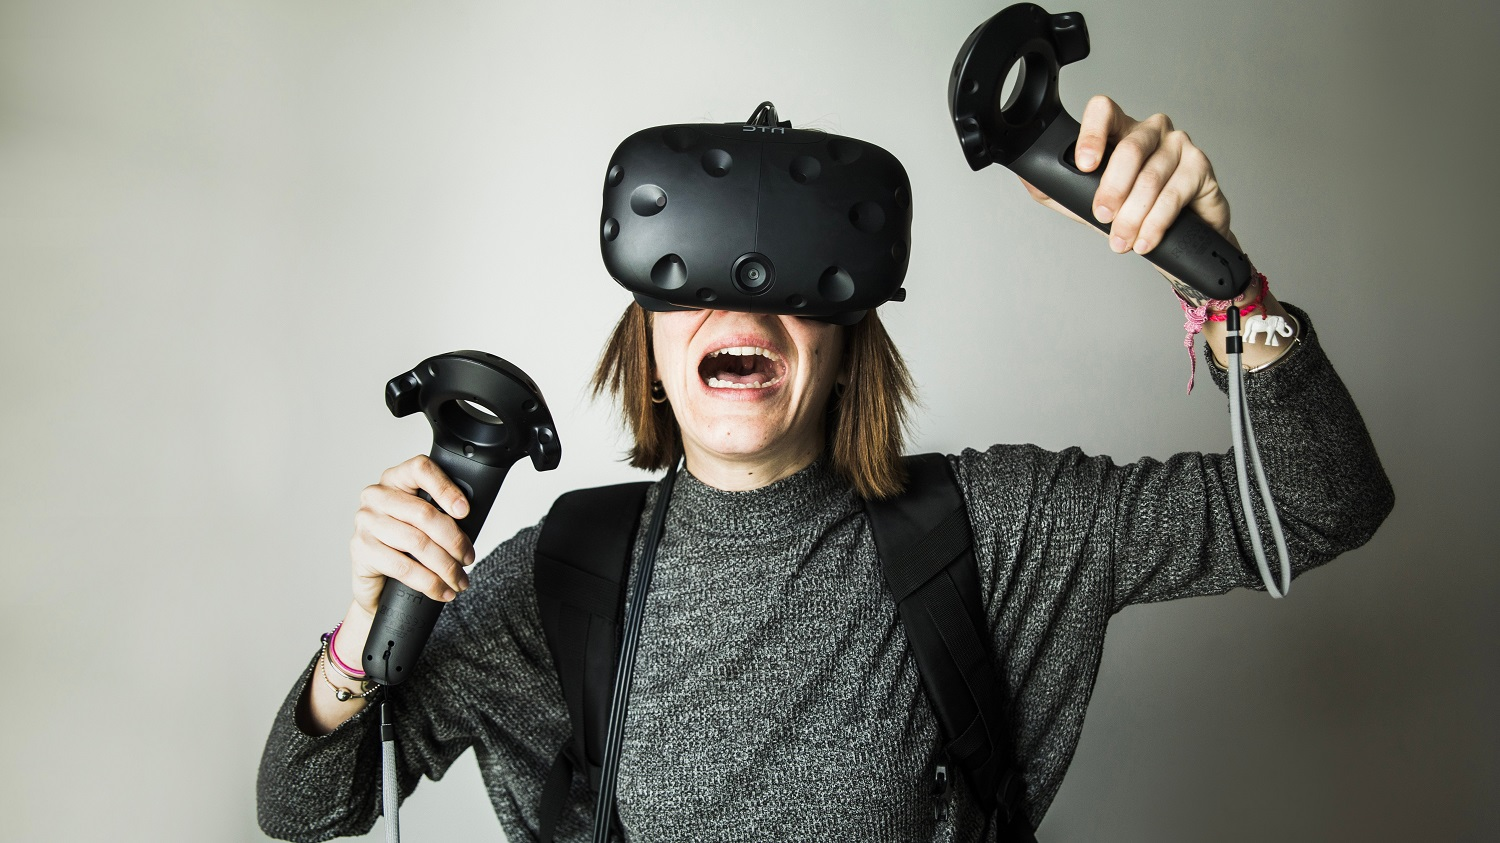 Girl wears a VR headset and holds controllers in her hands.